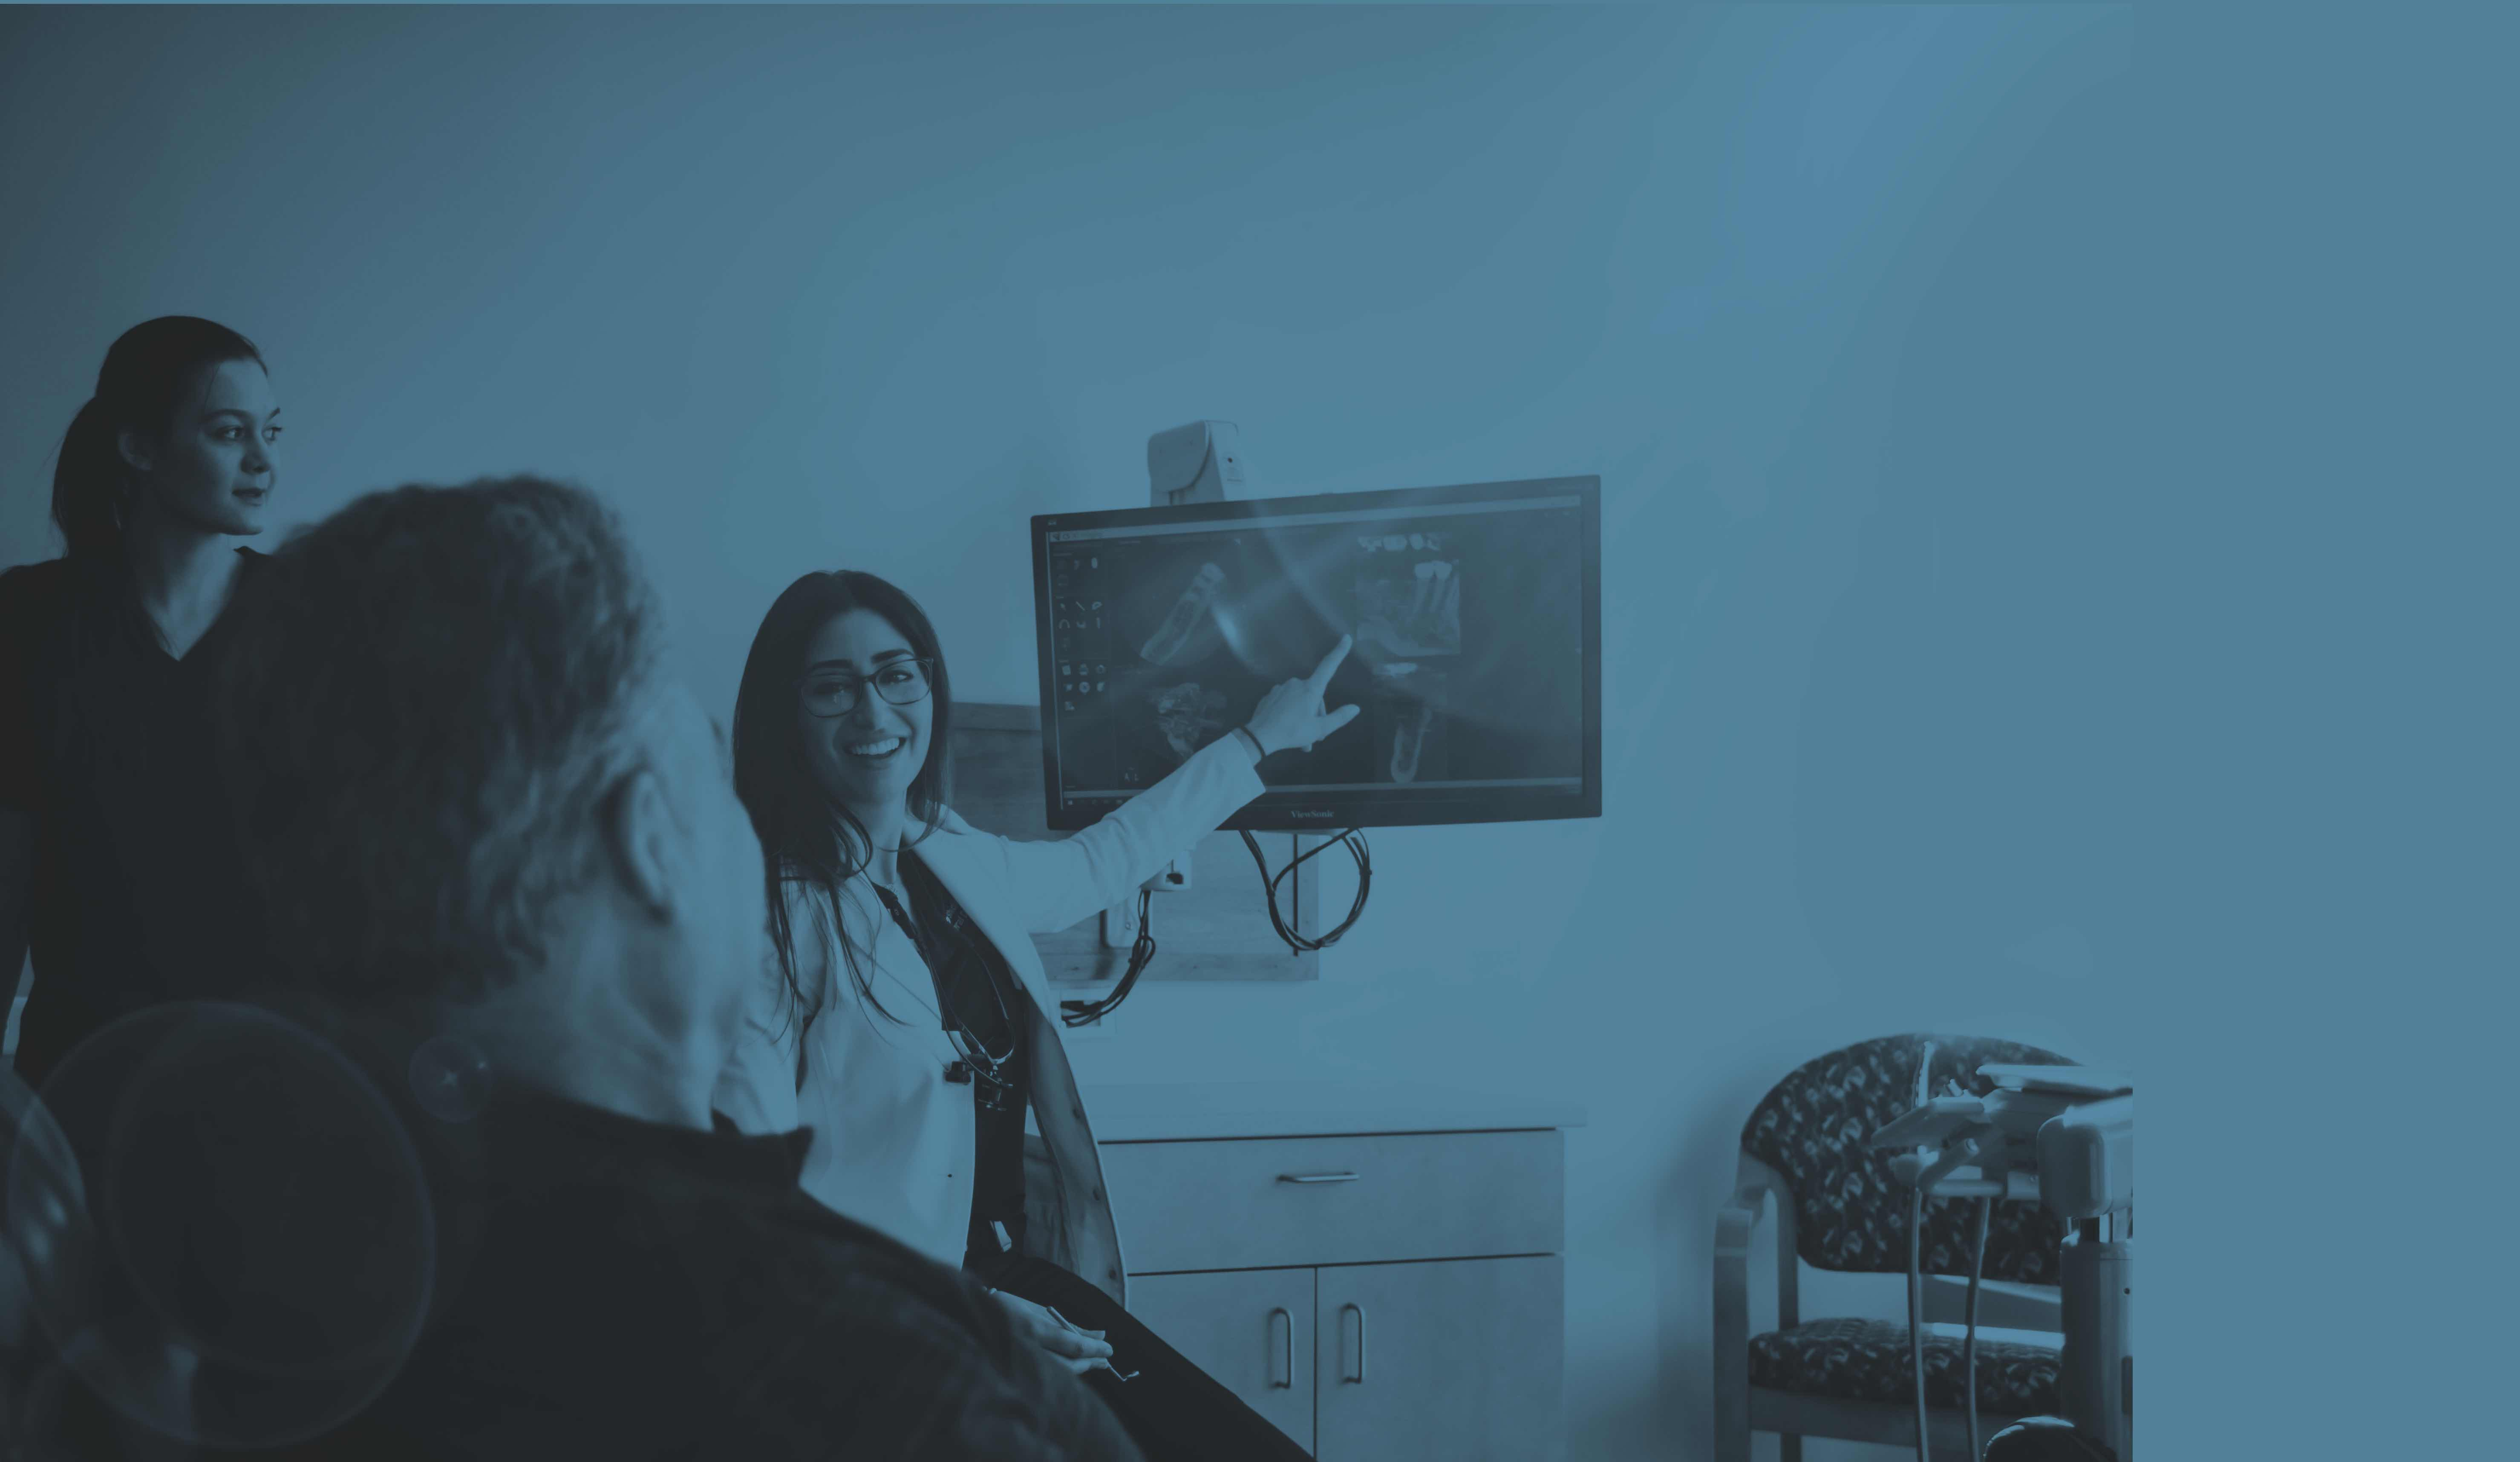 Photo of Englewood dentist Sahel Khorshidian DDS pointing at a dental x-ray image on a large screen